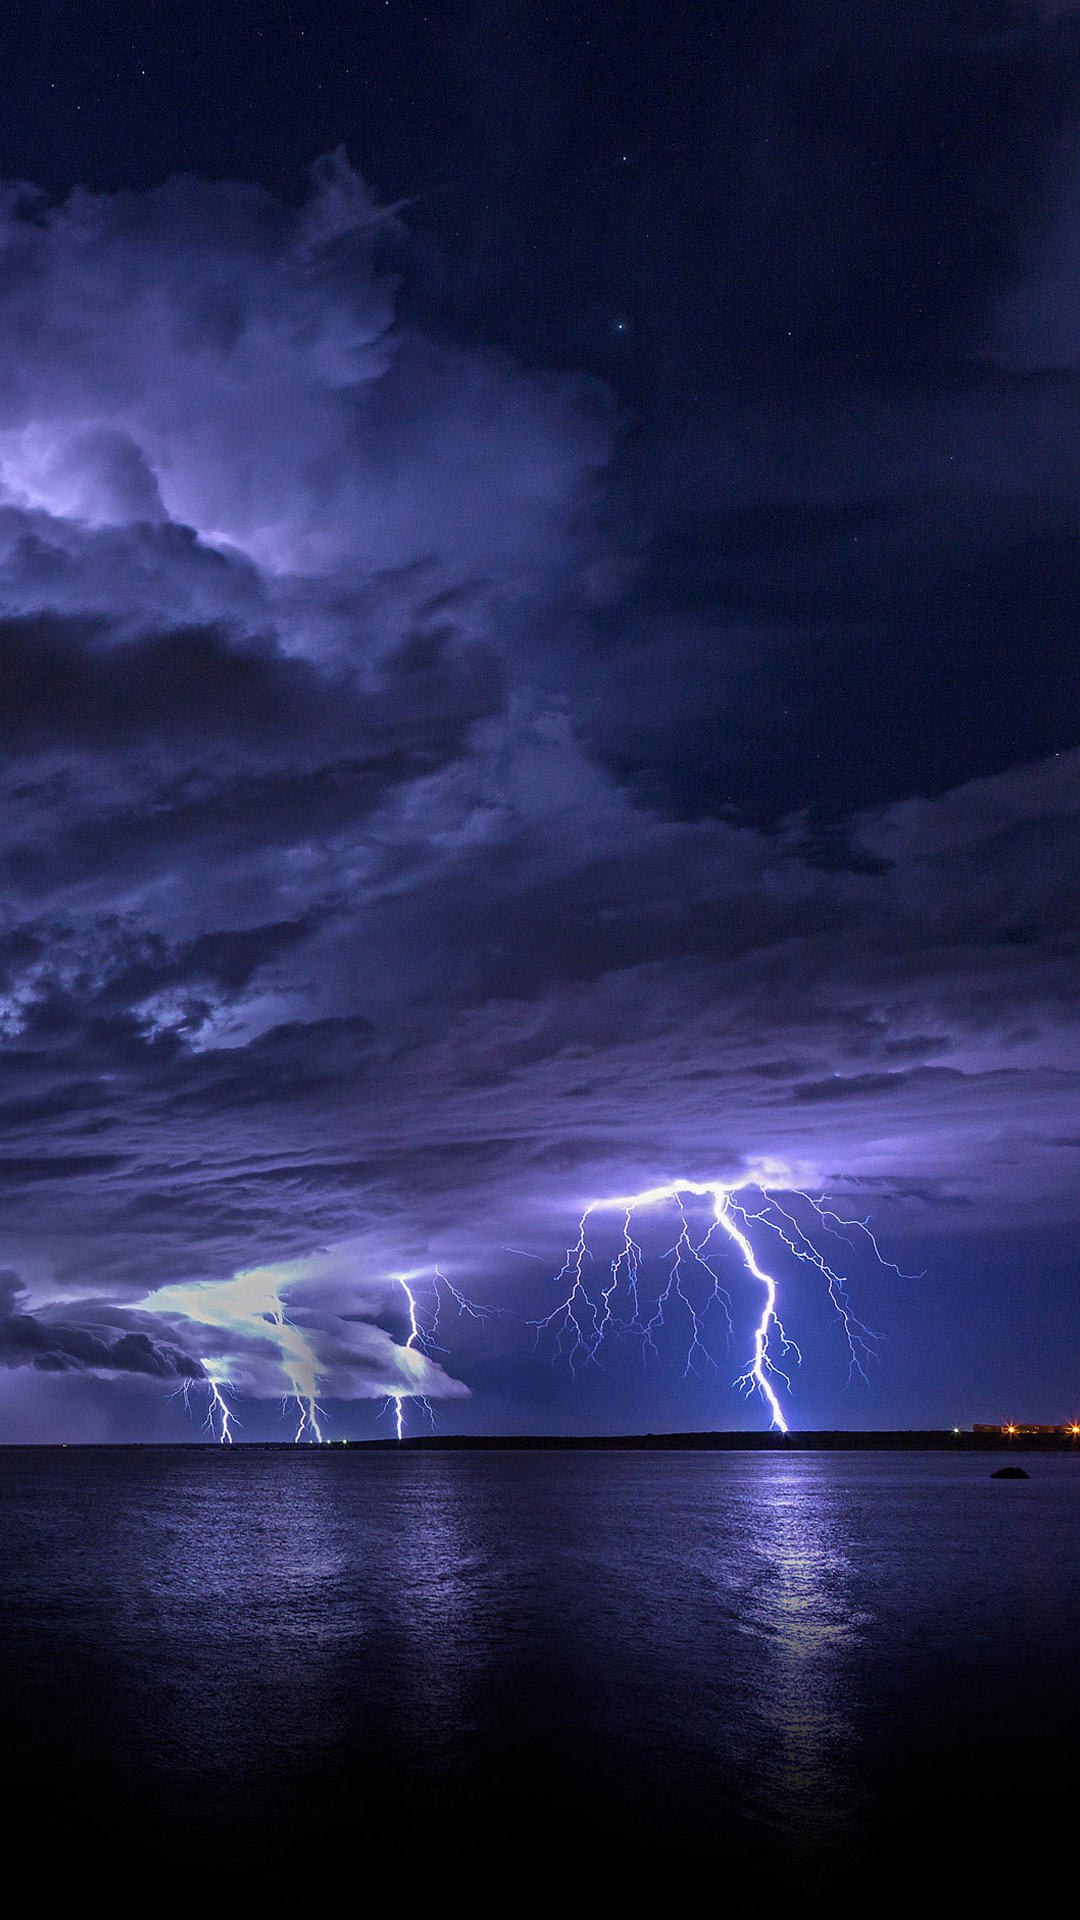 Astronomy-Lightning-Skyscape-iPhone-plus-wallpaper-wallpaper-wp4804357